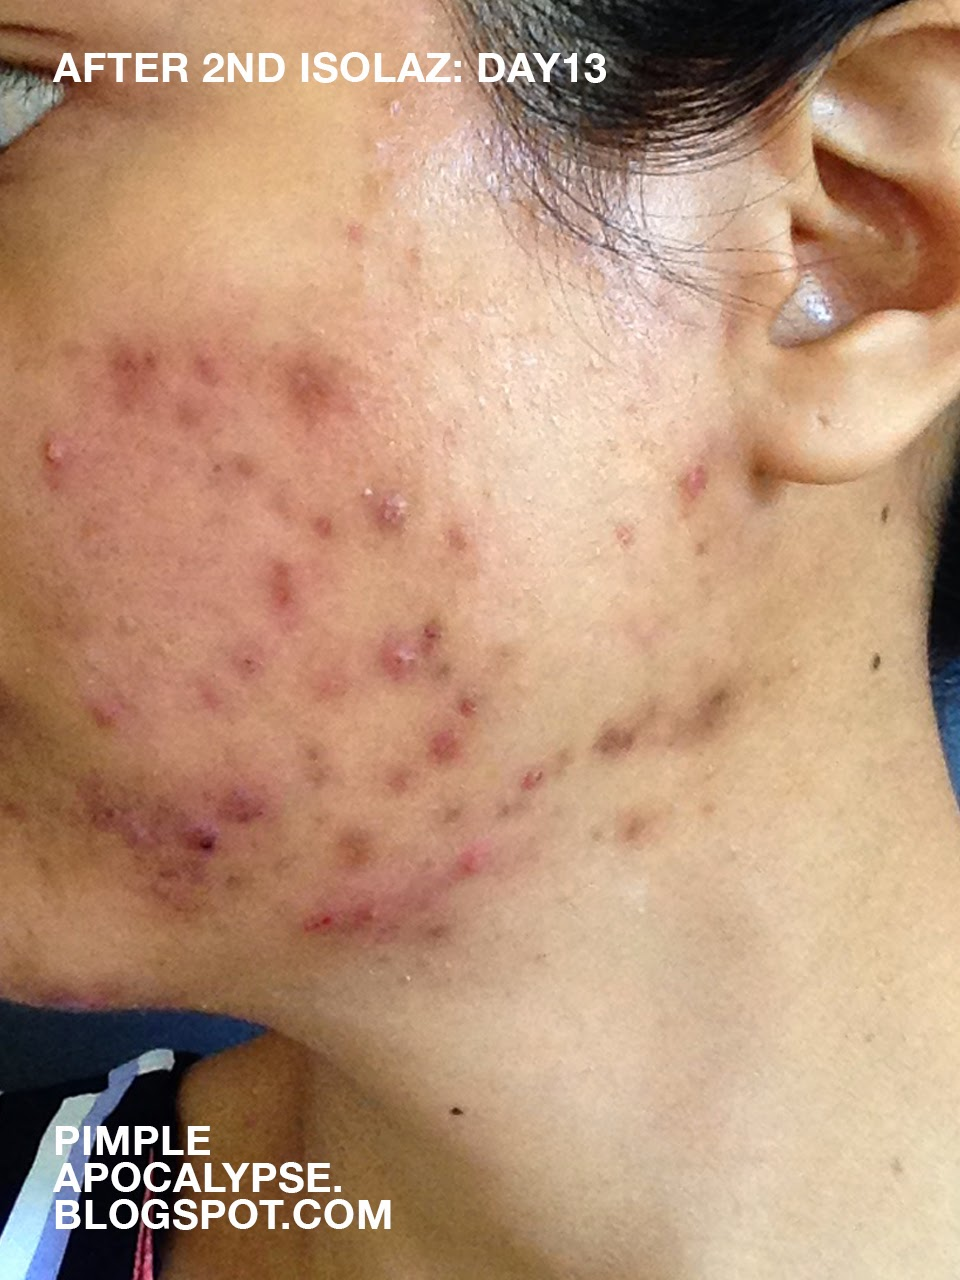 how to cure acne fast, acne breakouts before and after, Isolaz laser before and after, Isolaz review, cystic acne, closed comedones, clogged pores, whiteheads, hyperpigmentation, acne scars, Laser Genesis on dark skin, Laser Genesis review, P. acne bacteria, hormonal acne, adult acne, androgen acne, trying to conceive, pregnancy acne, birth control pills, minocycline acne medication